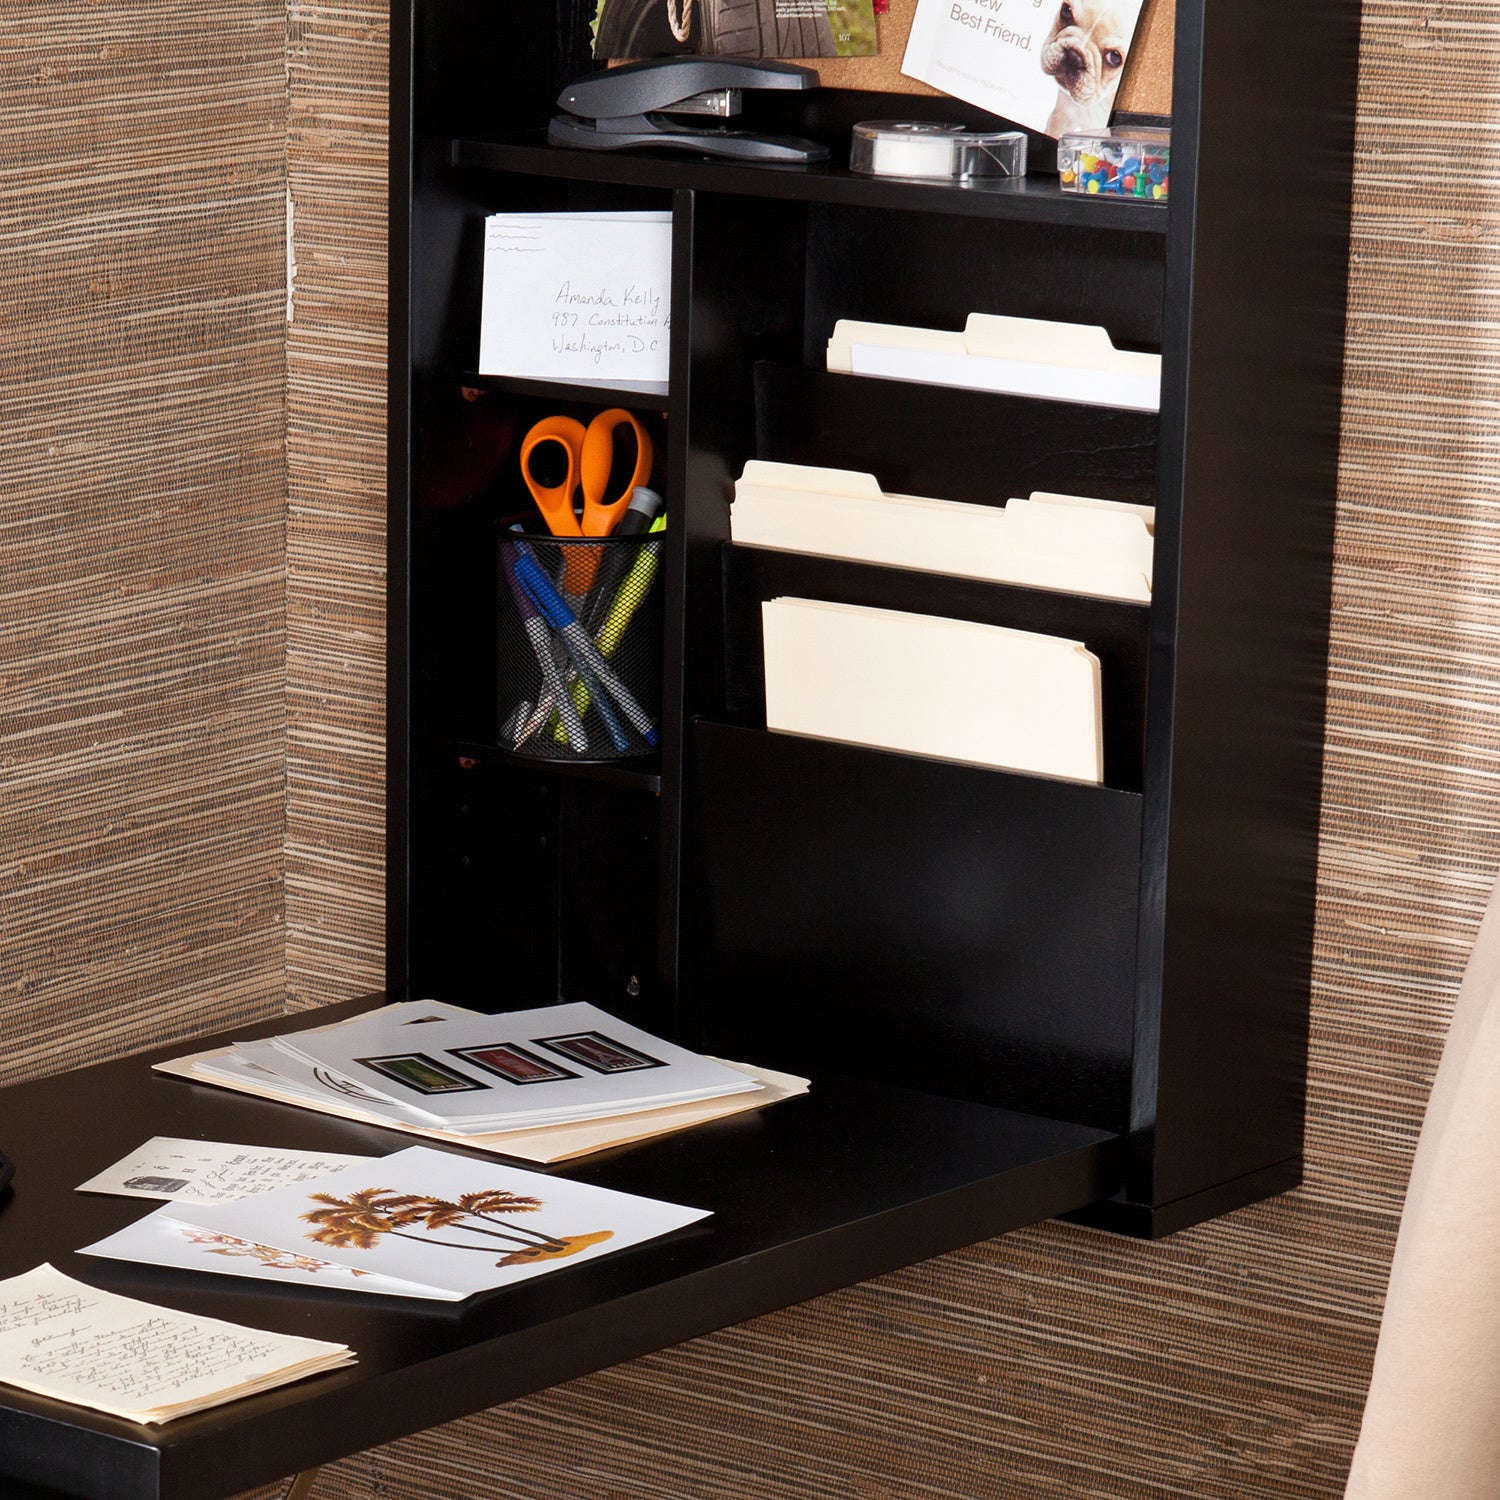 Smartly Remington Disappearing Desk Bed Hide Away Desk Bed Wilding Wallbeds  in Murphy Bed With Desk